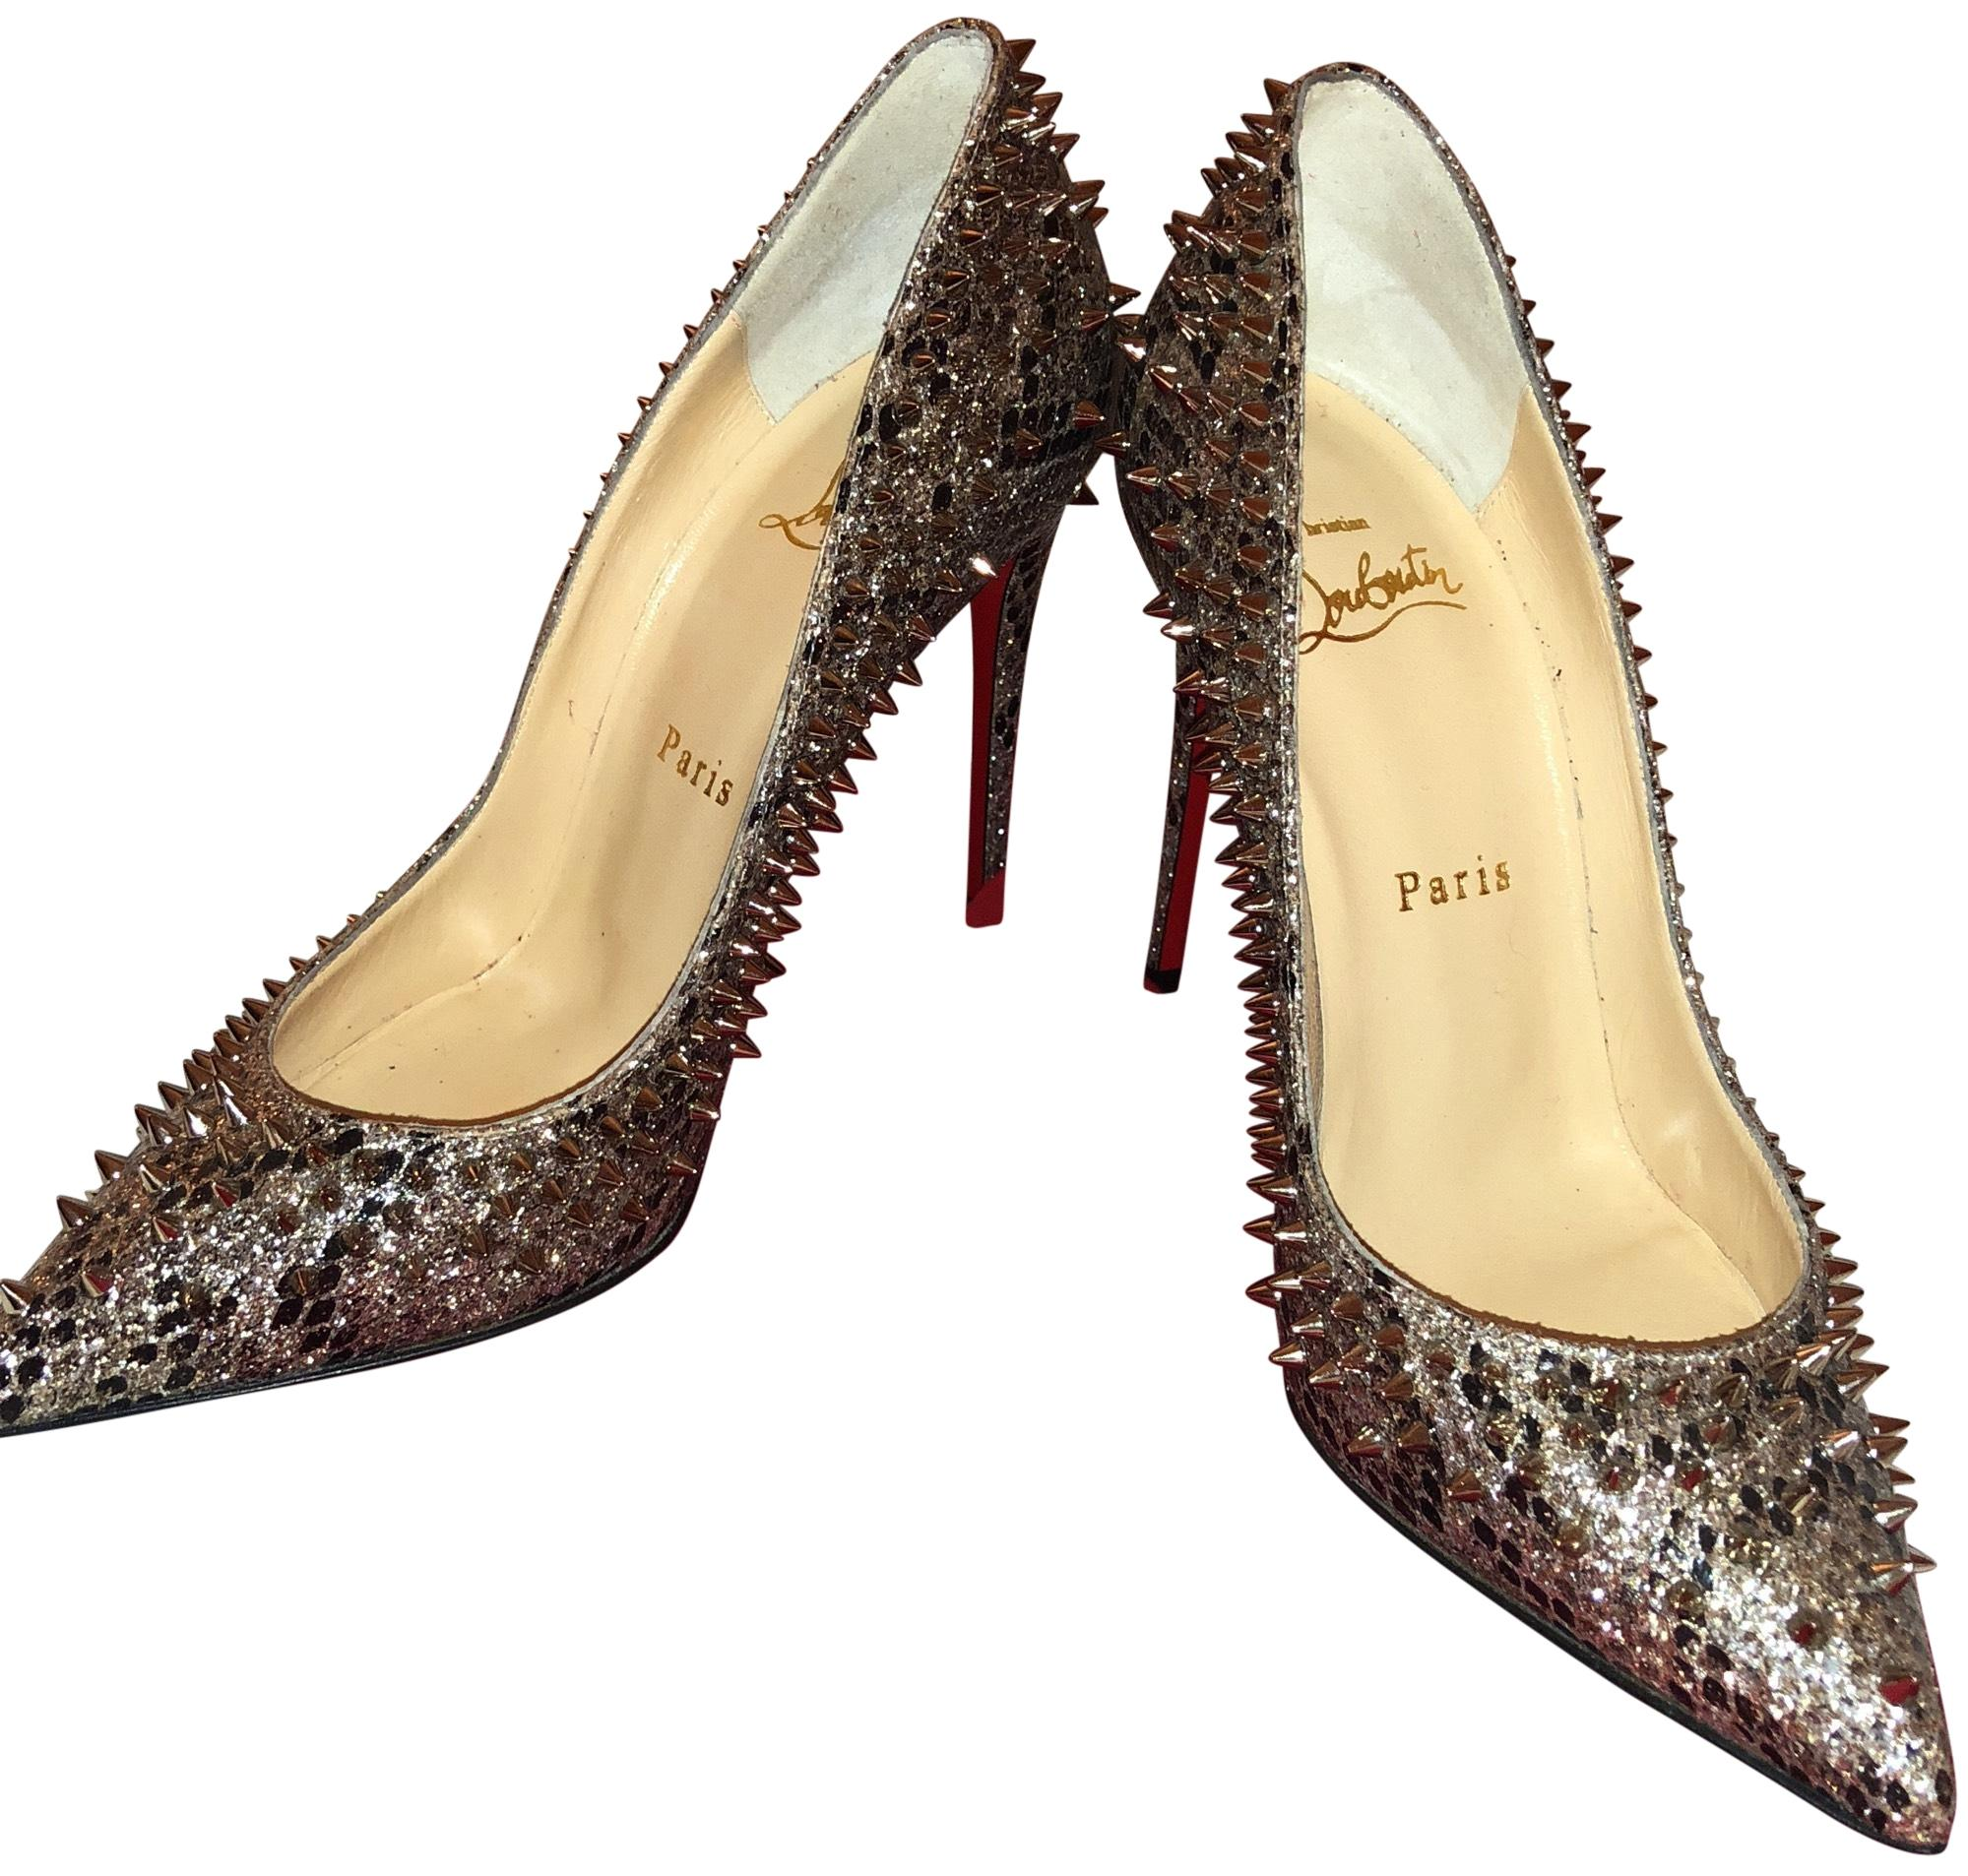 45f9b3d6522f where can i buy christian louboutin spiked pumps 8c904 b41a3